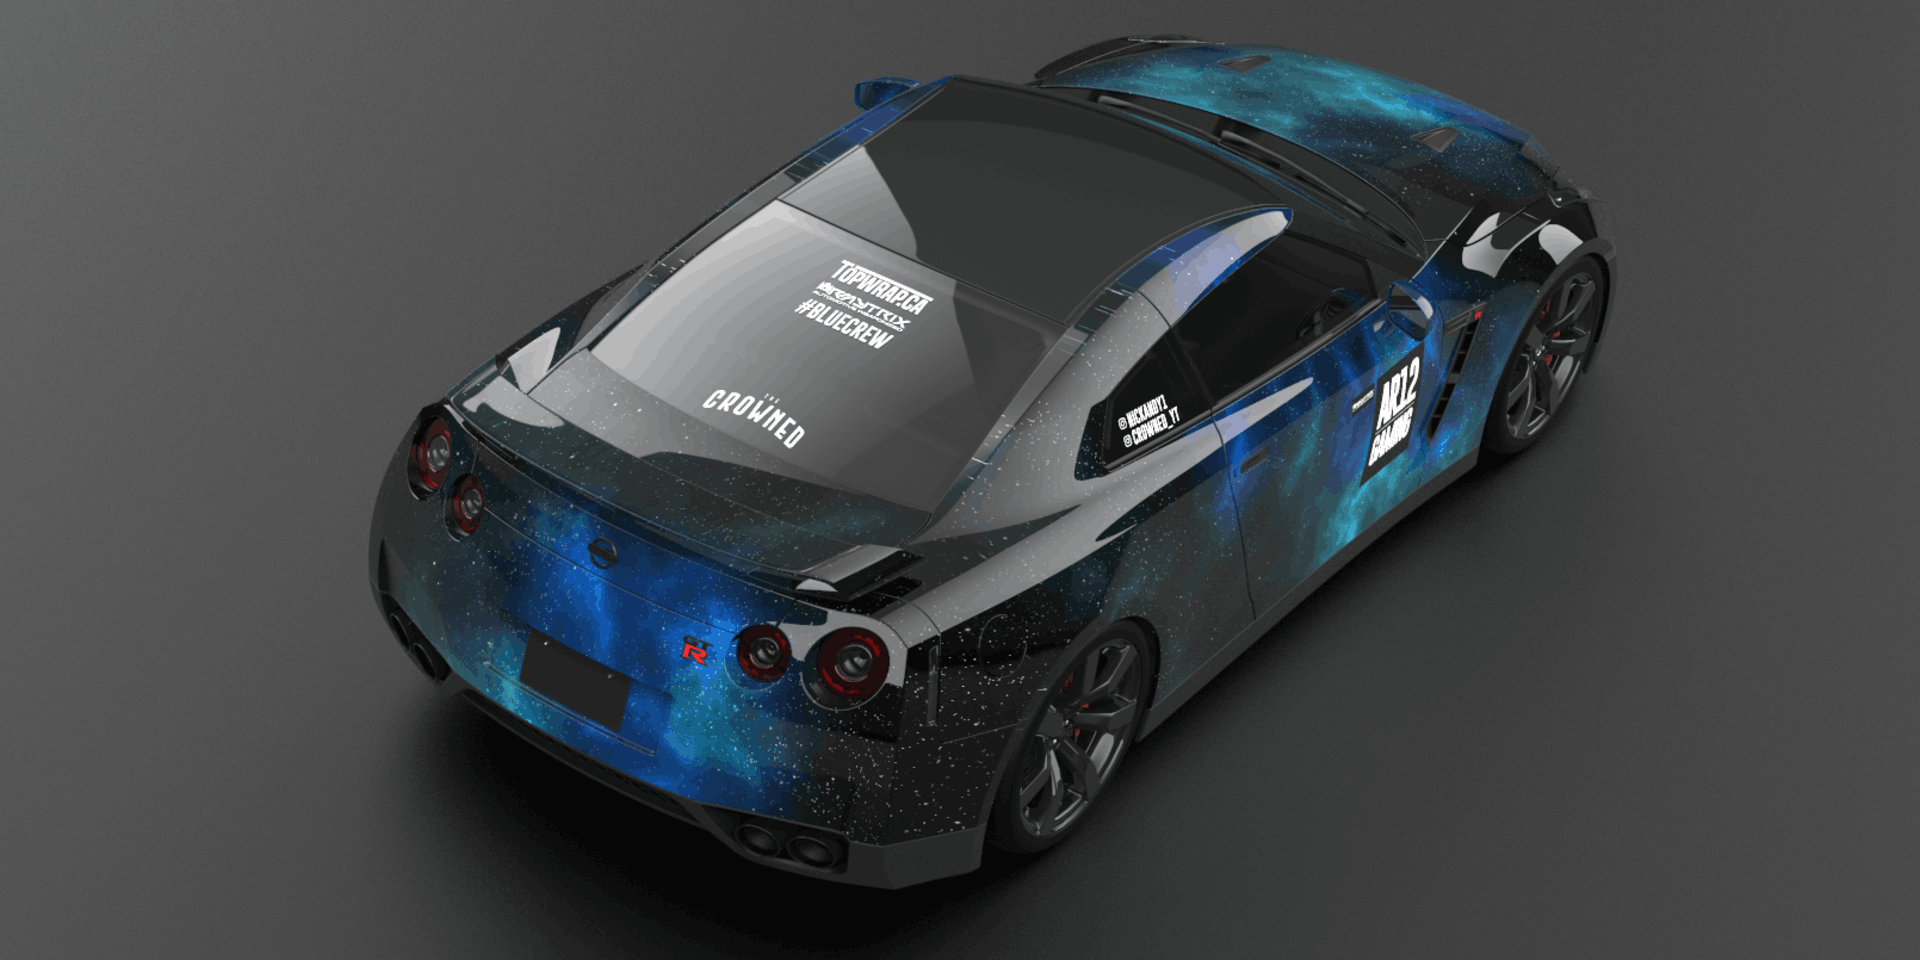 Nissan Gtr Wrap Contest Results And Interview With The Winner R35 Sketch Toggle Navigation